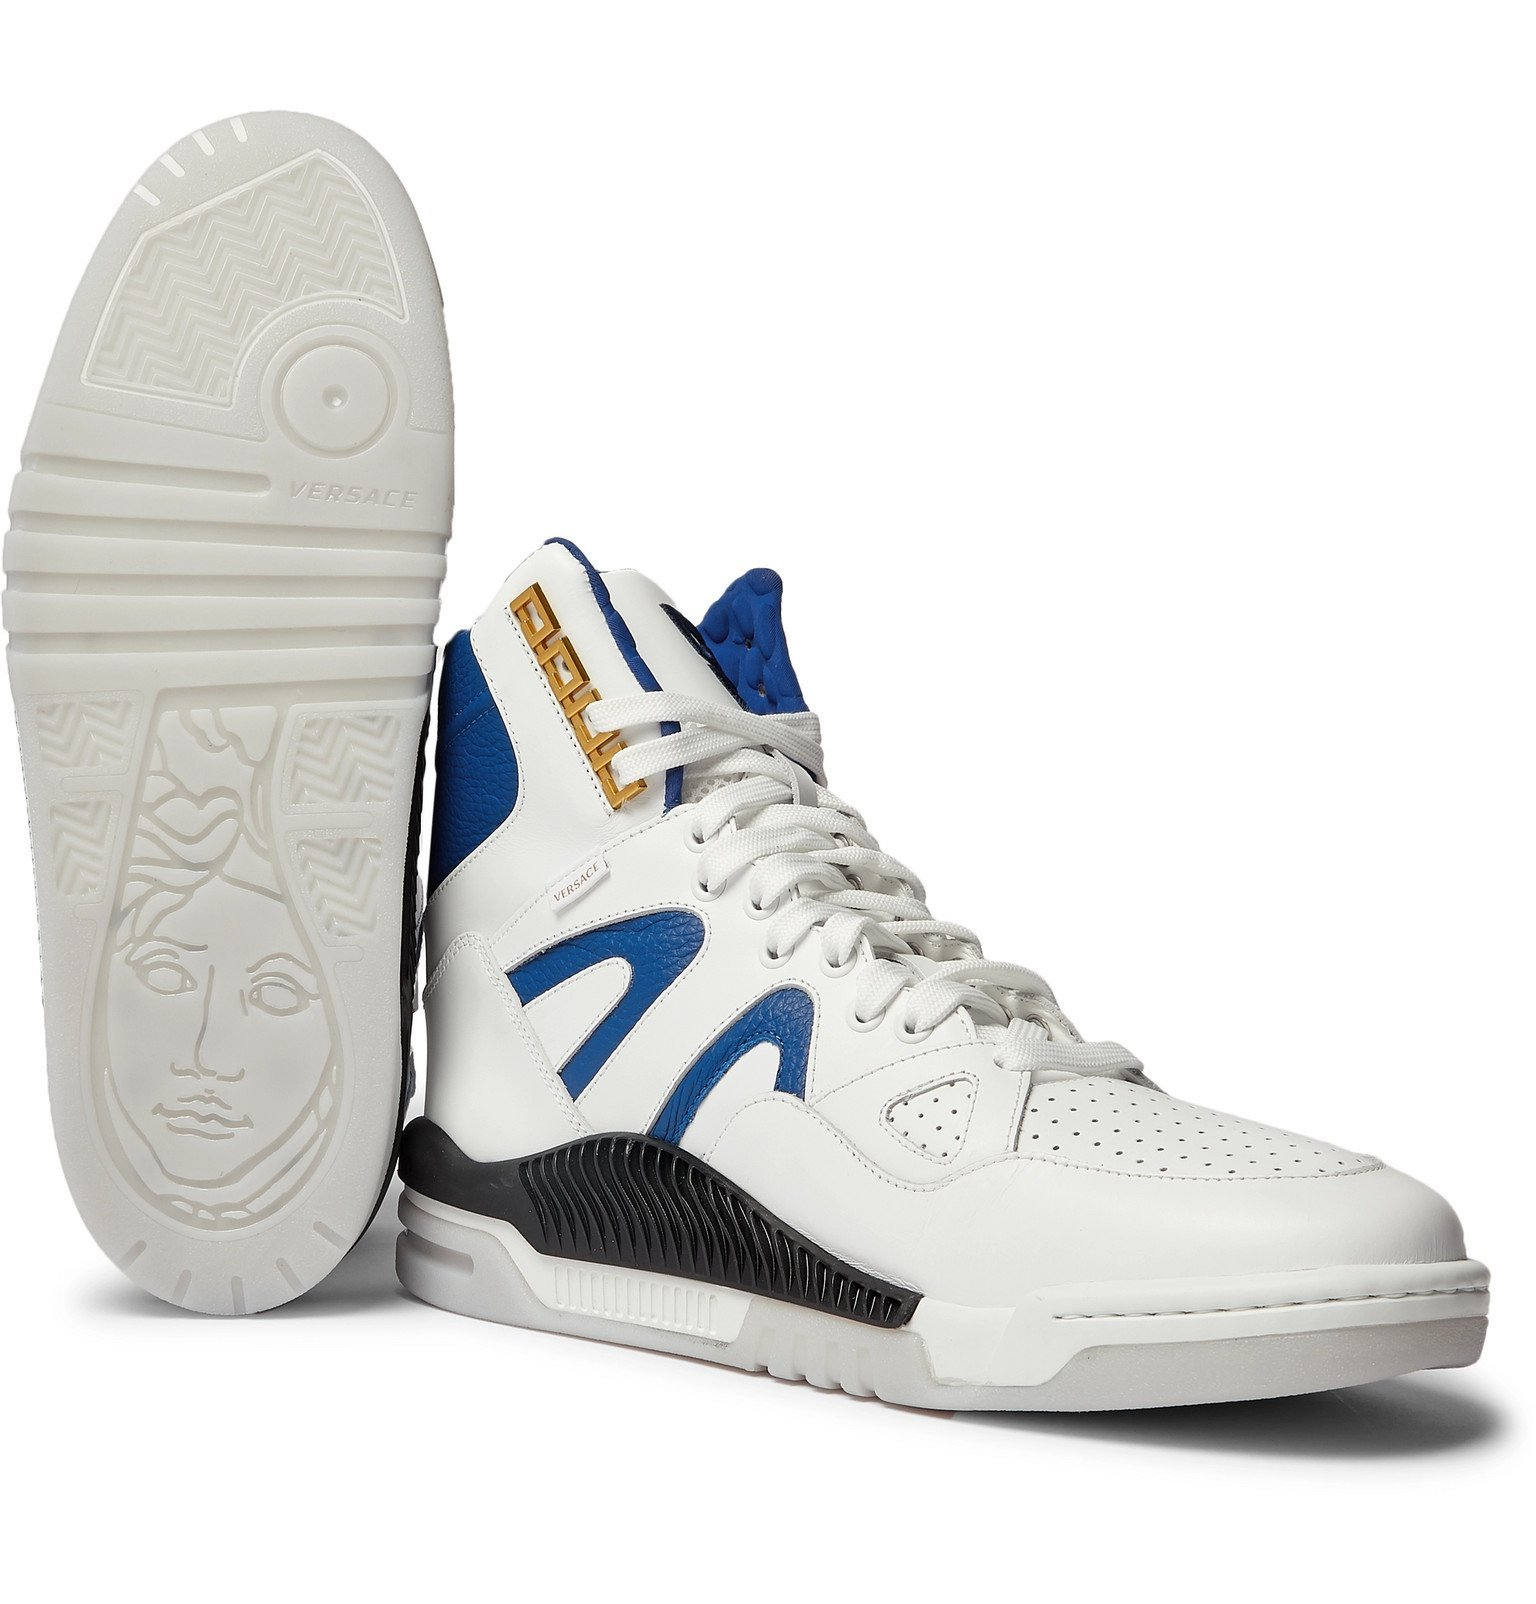 Versace - Panelled Leather High-Top Sneakers - White